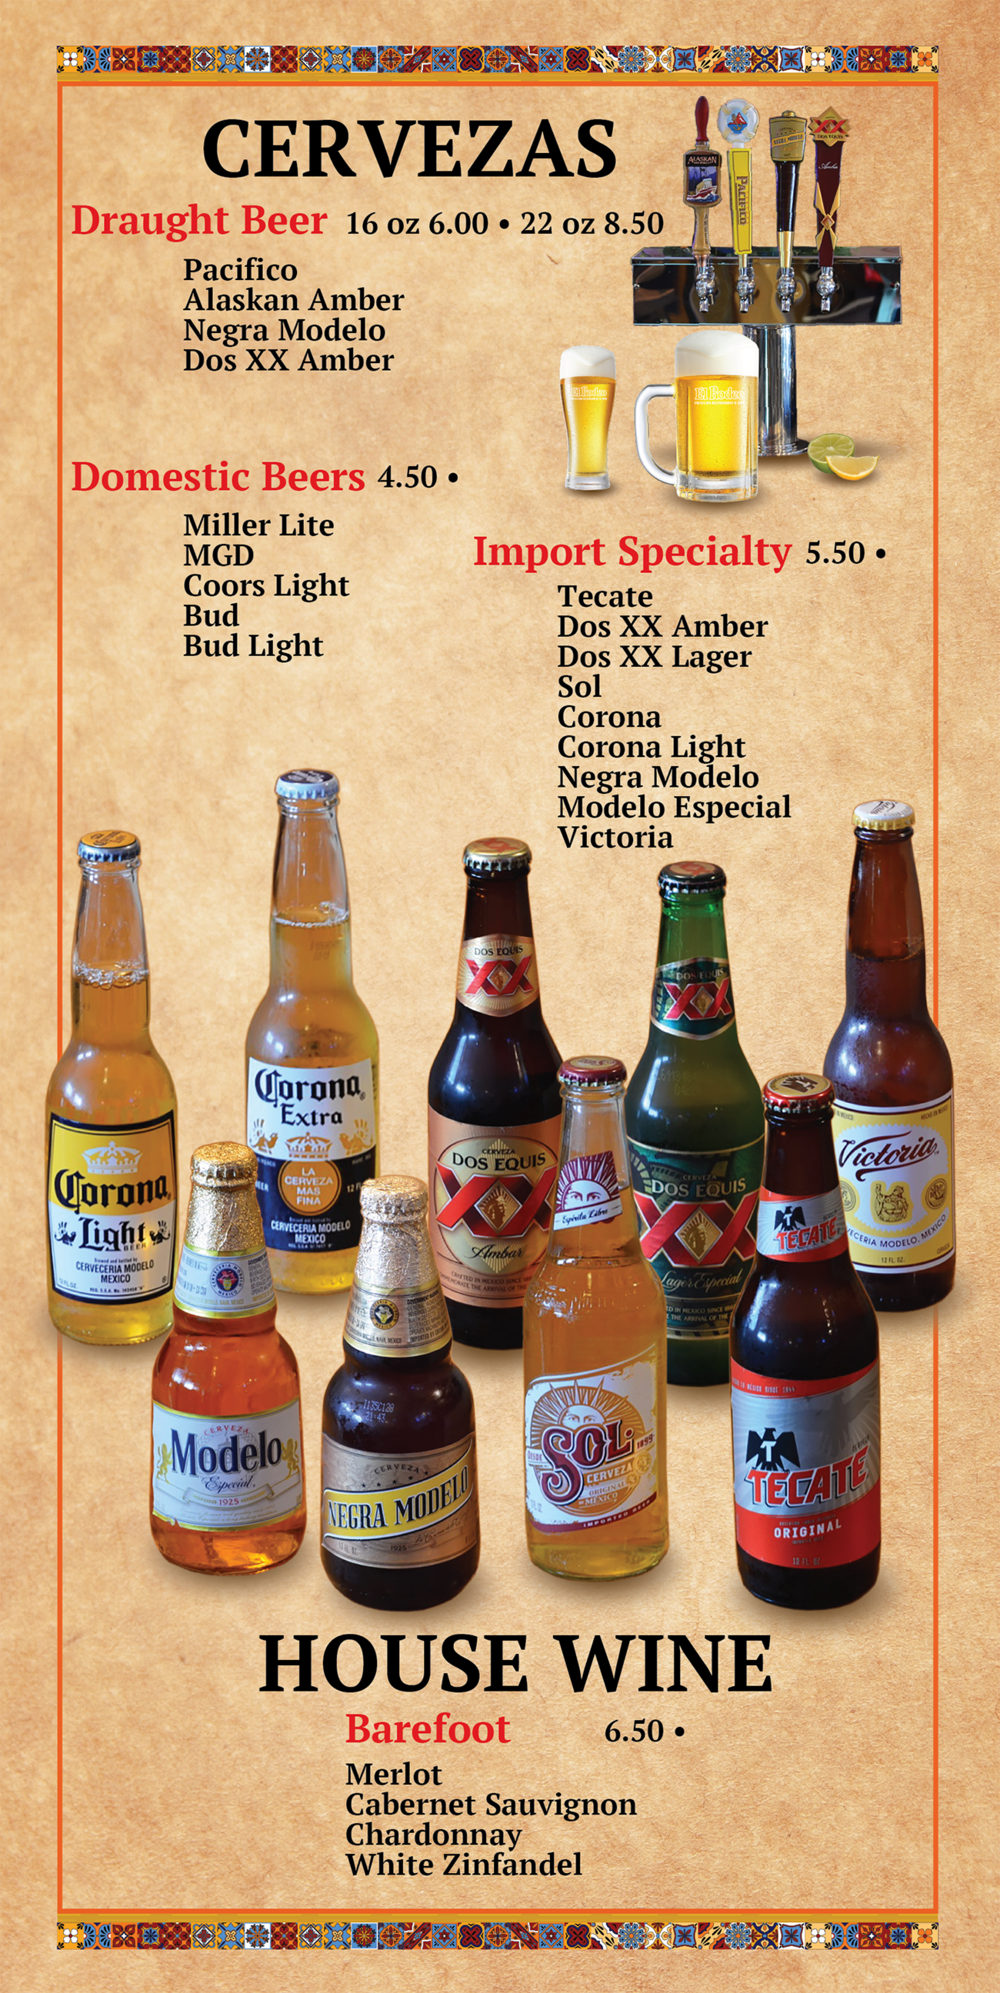 Rodeo new drinks cervezas 150 copy.png